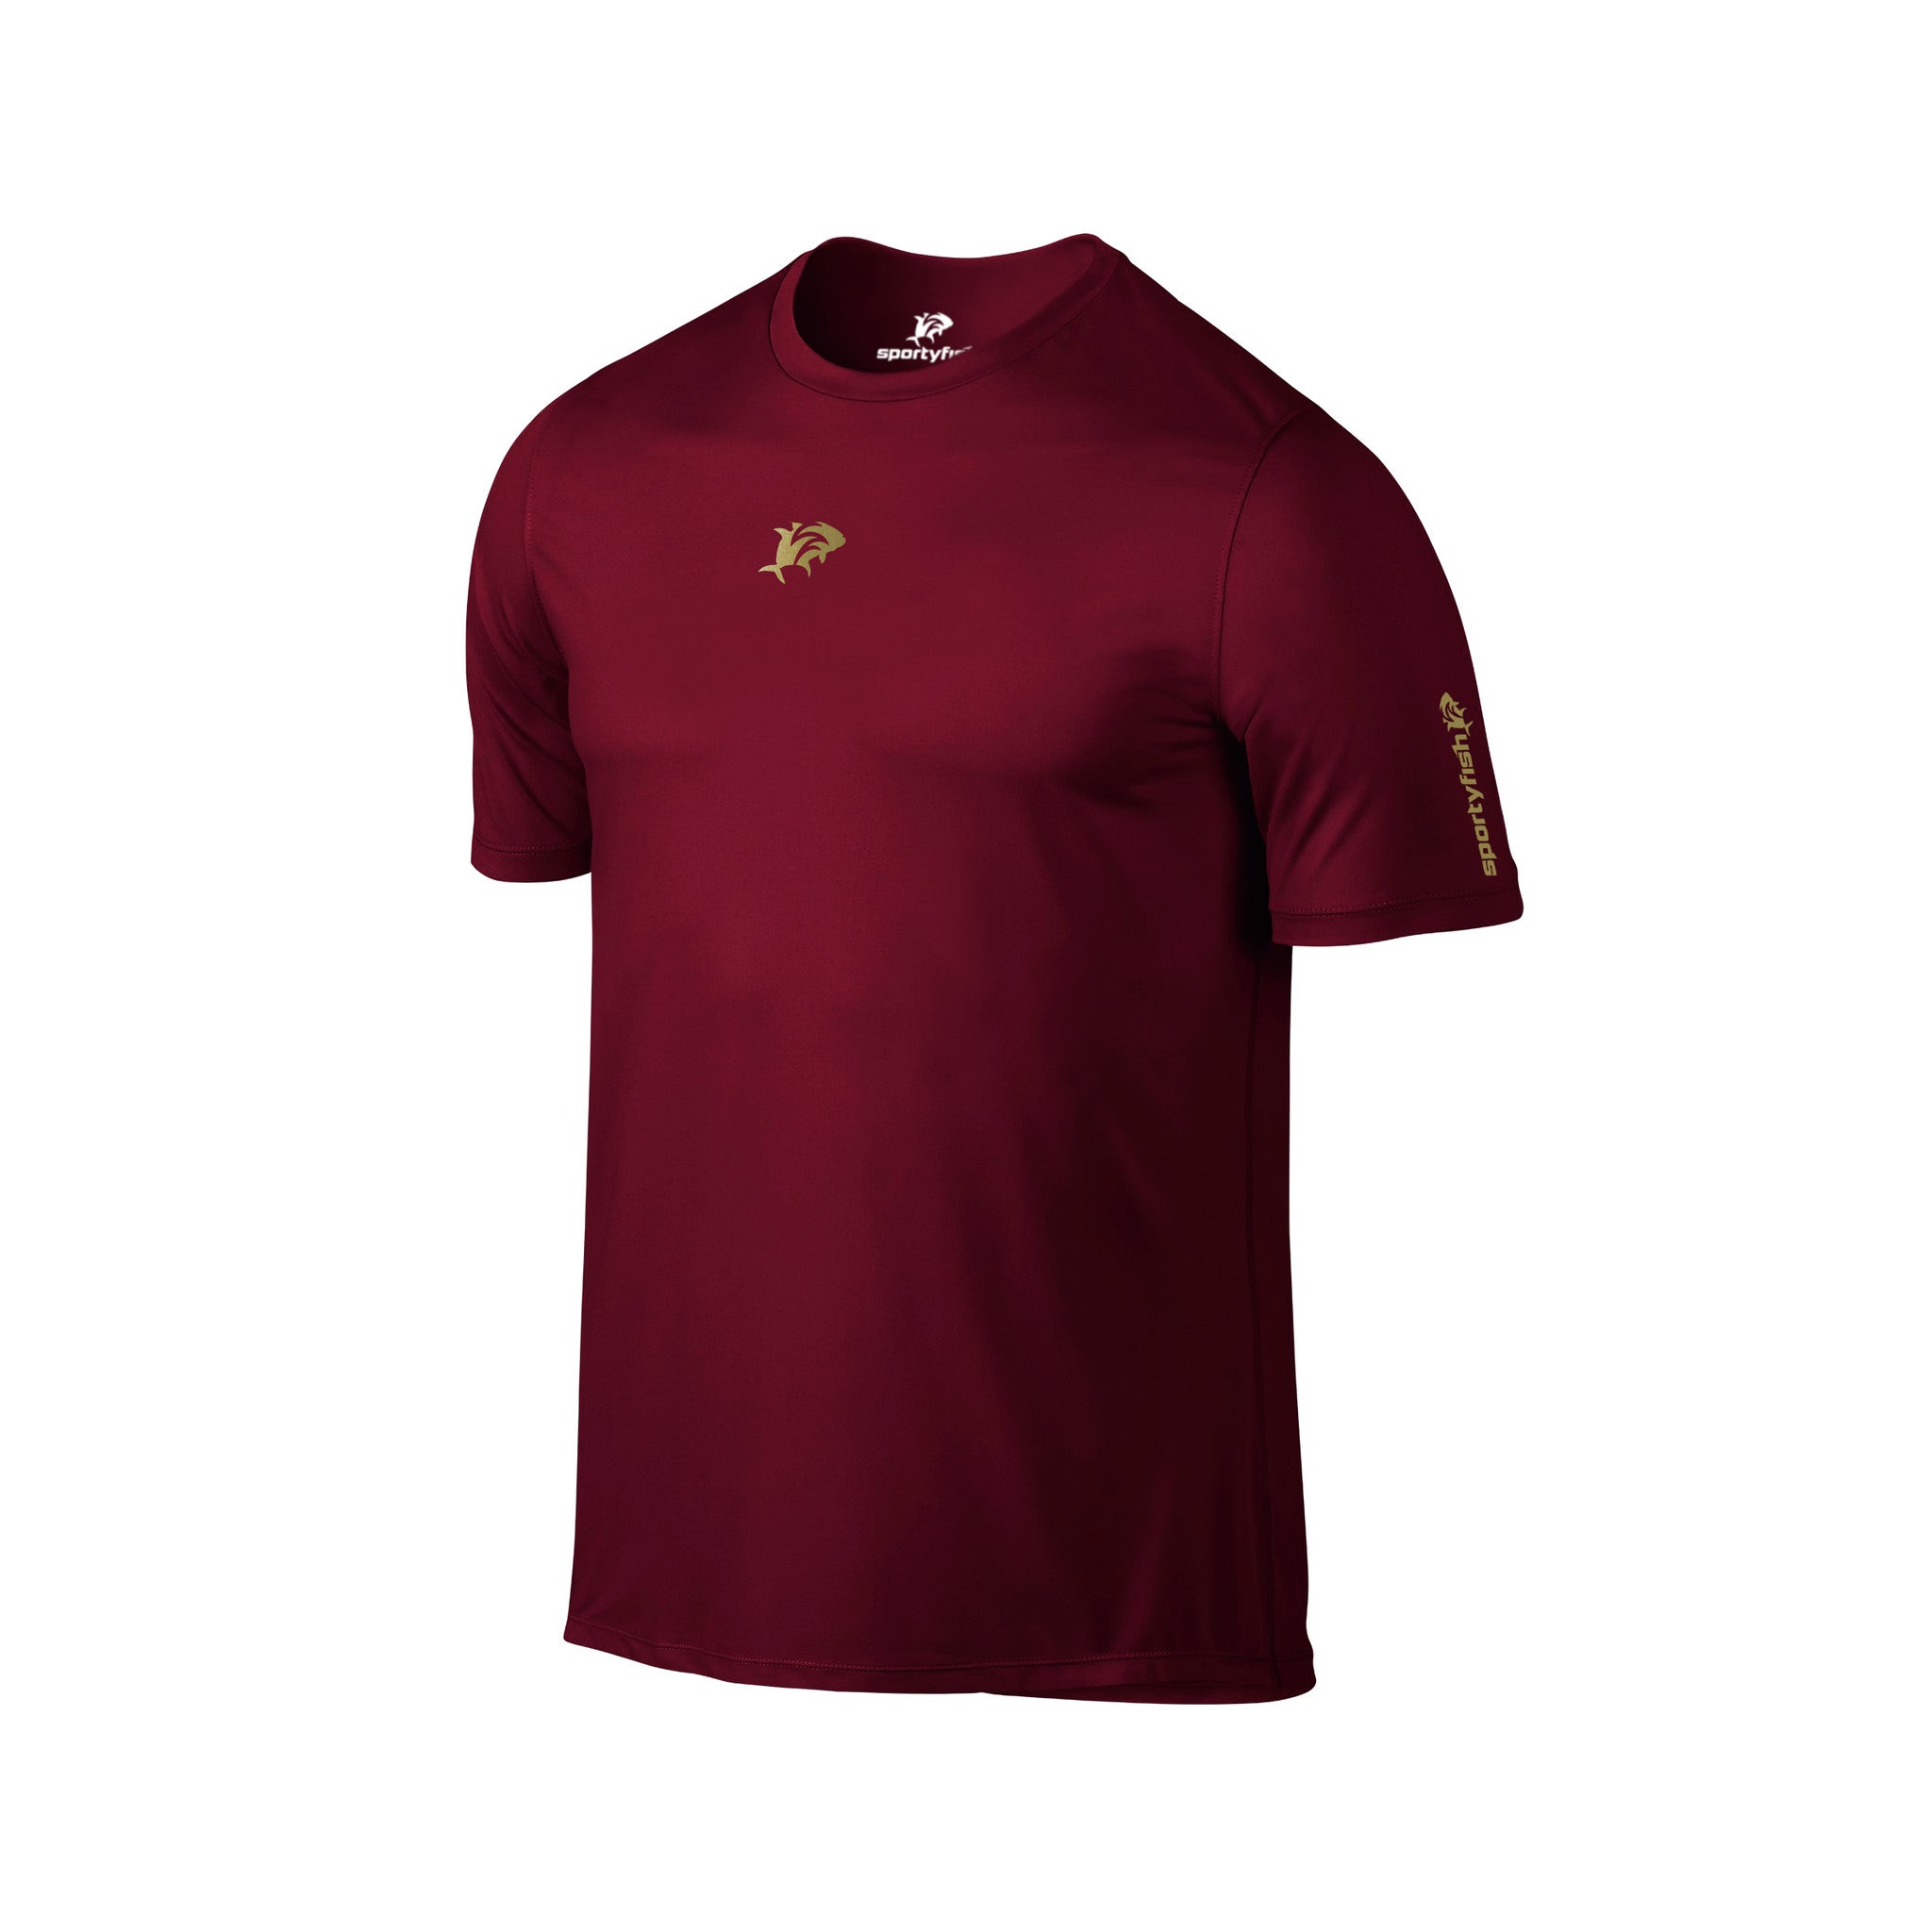 SportyFish Silhouette Series Gold print Maroon T-shirt: Swords of Honour front view